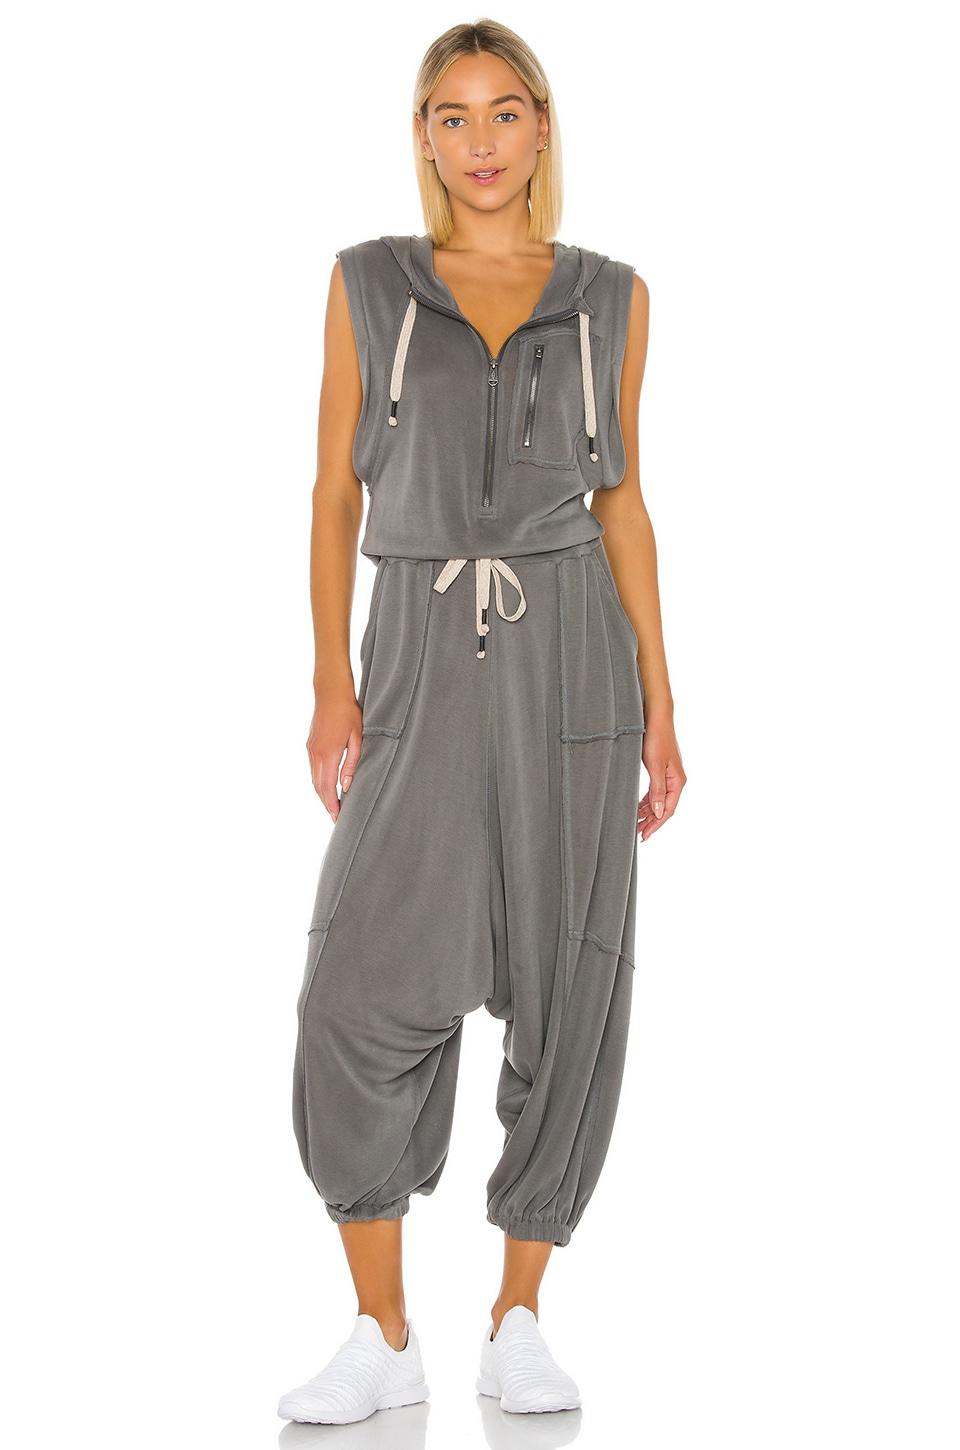 Free People X FP Movement Franklin Hills Jumpsuit in Dark Grey